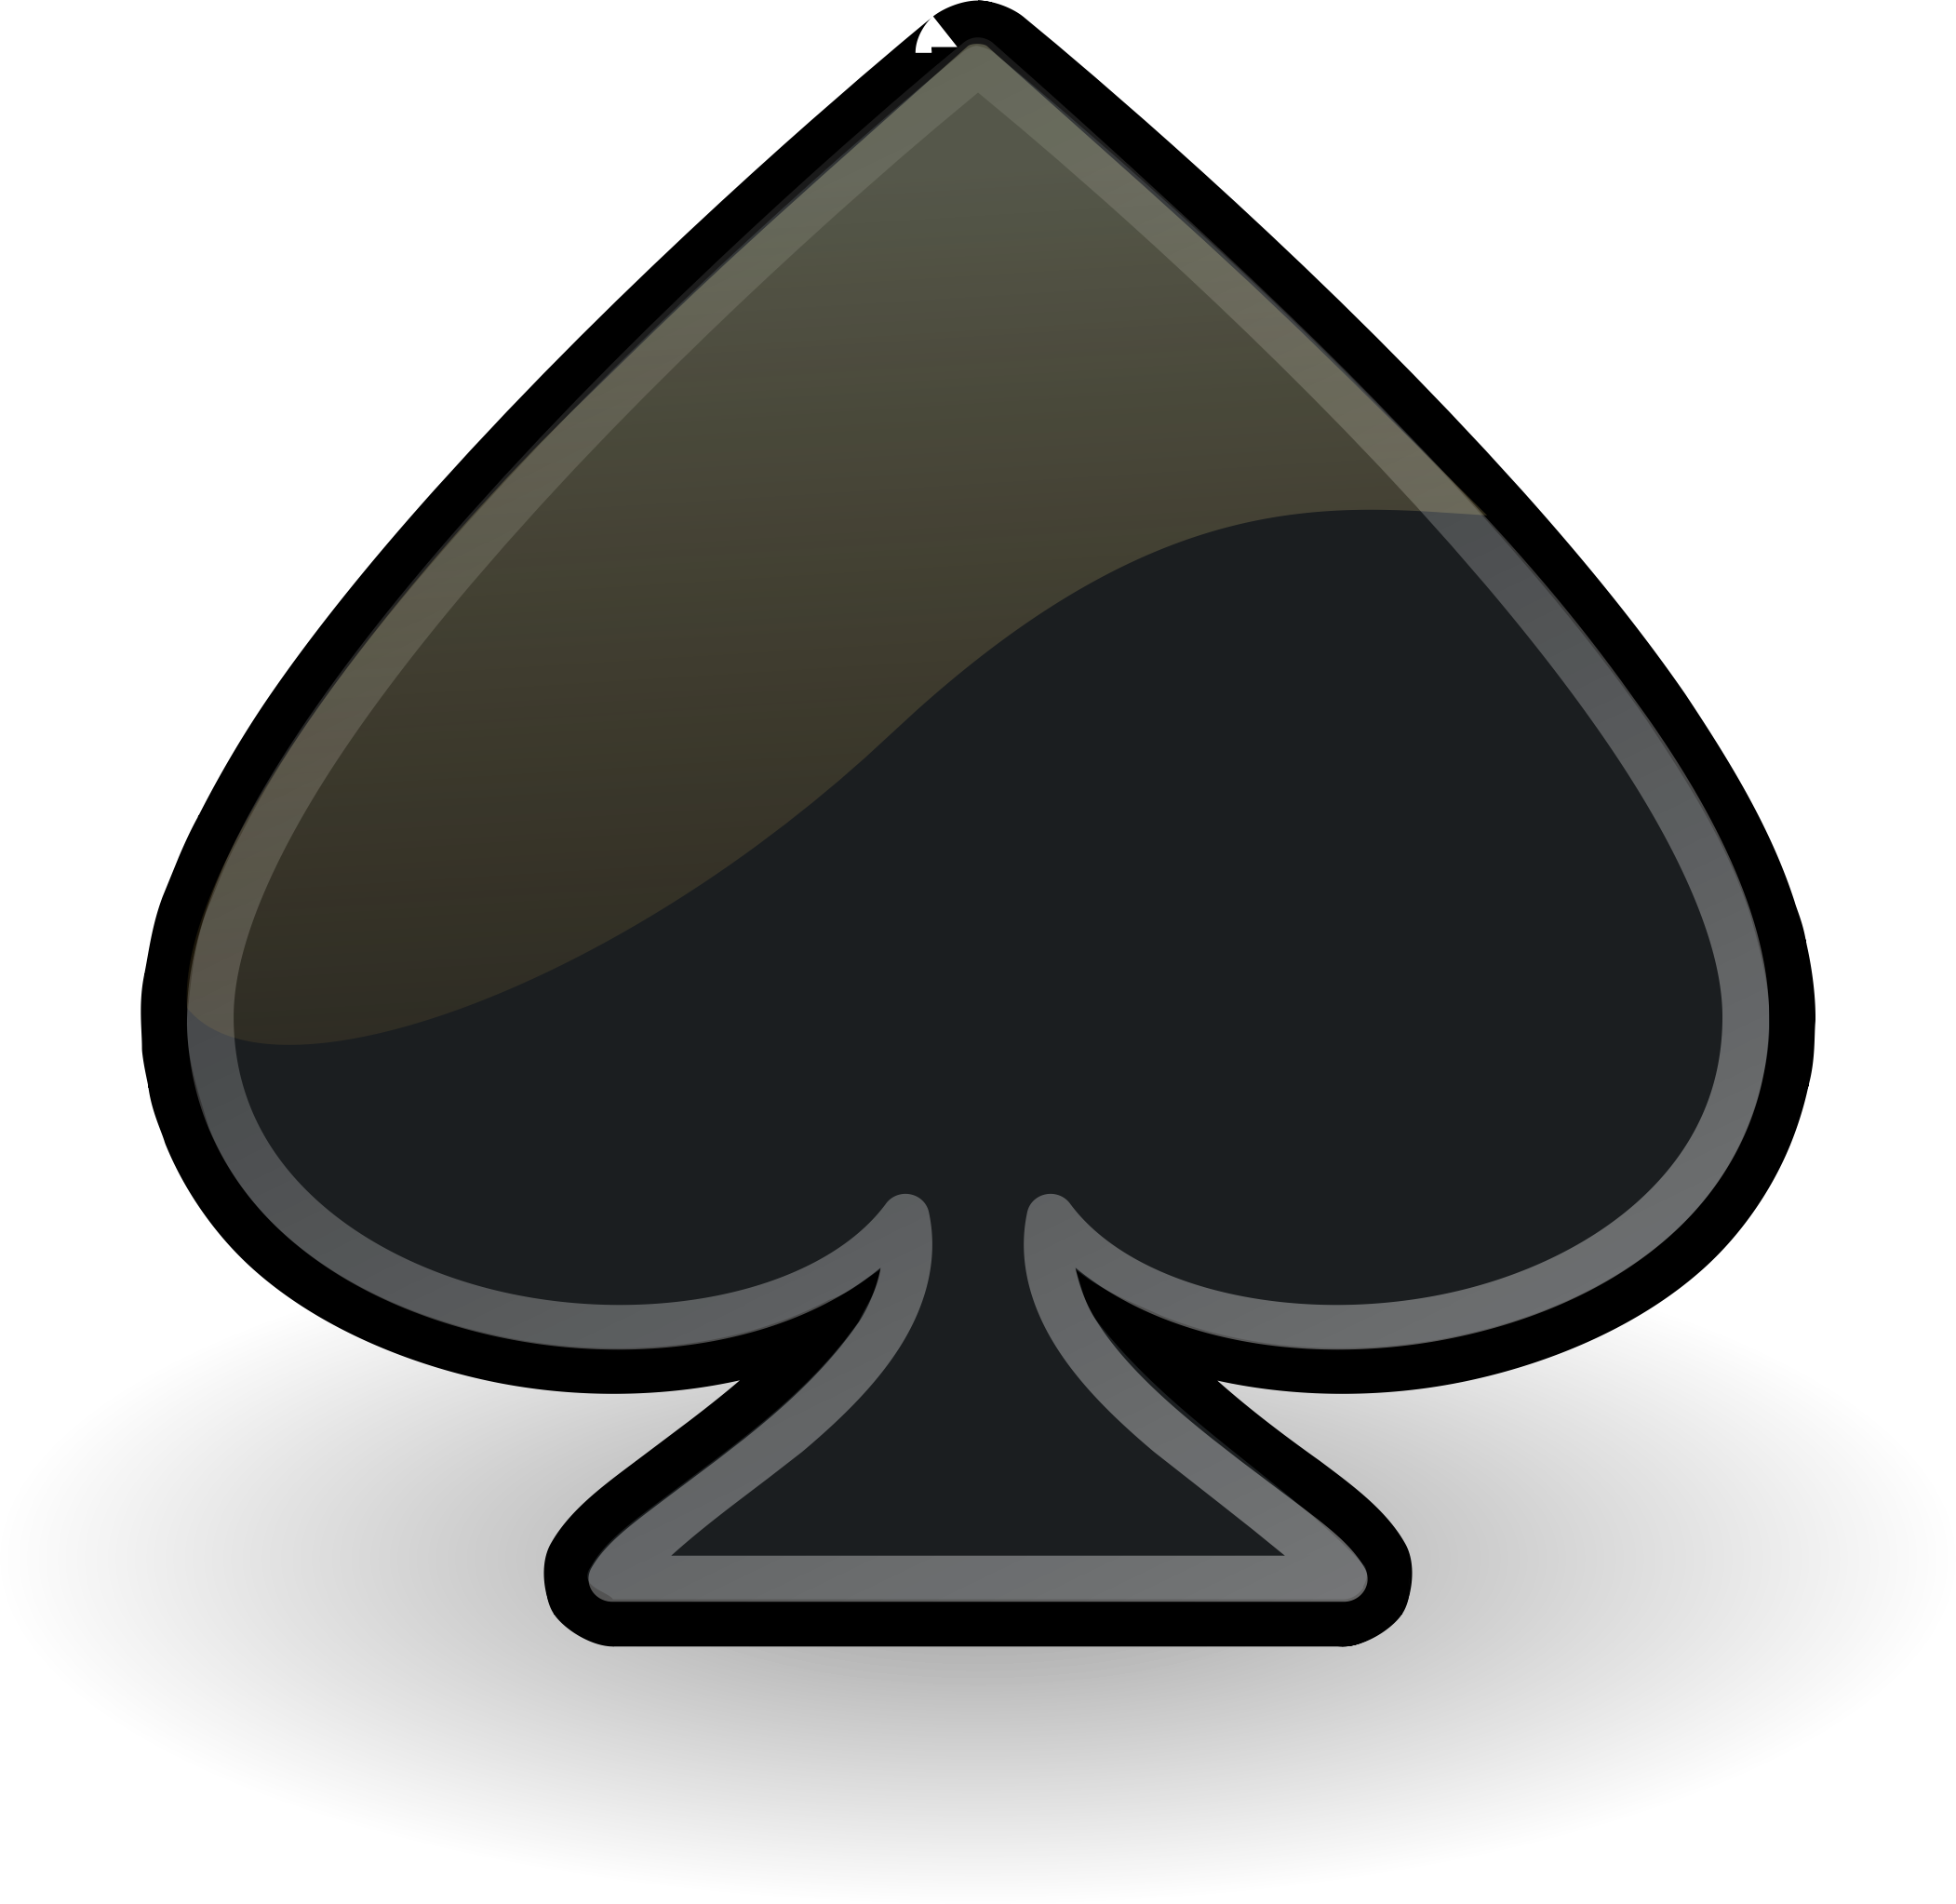 emblem-spades by Rocket000